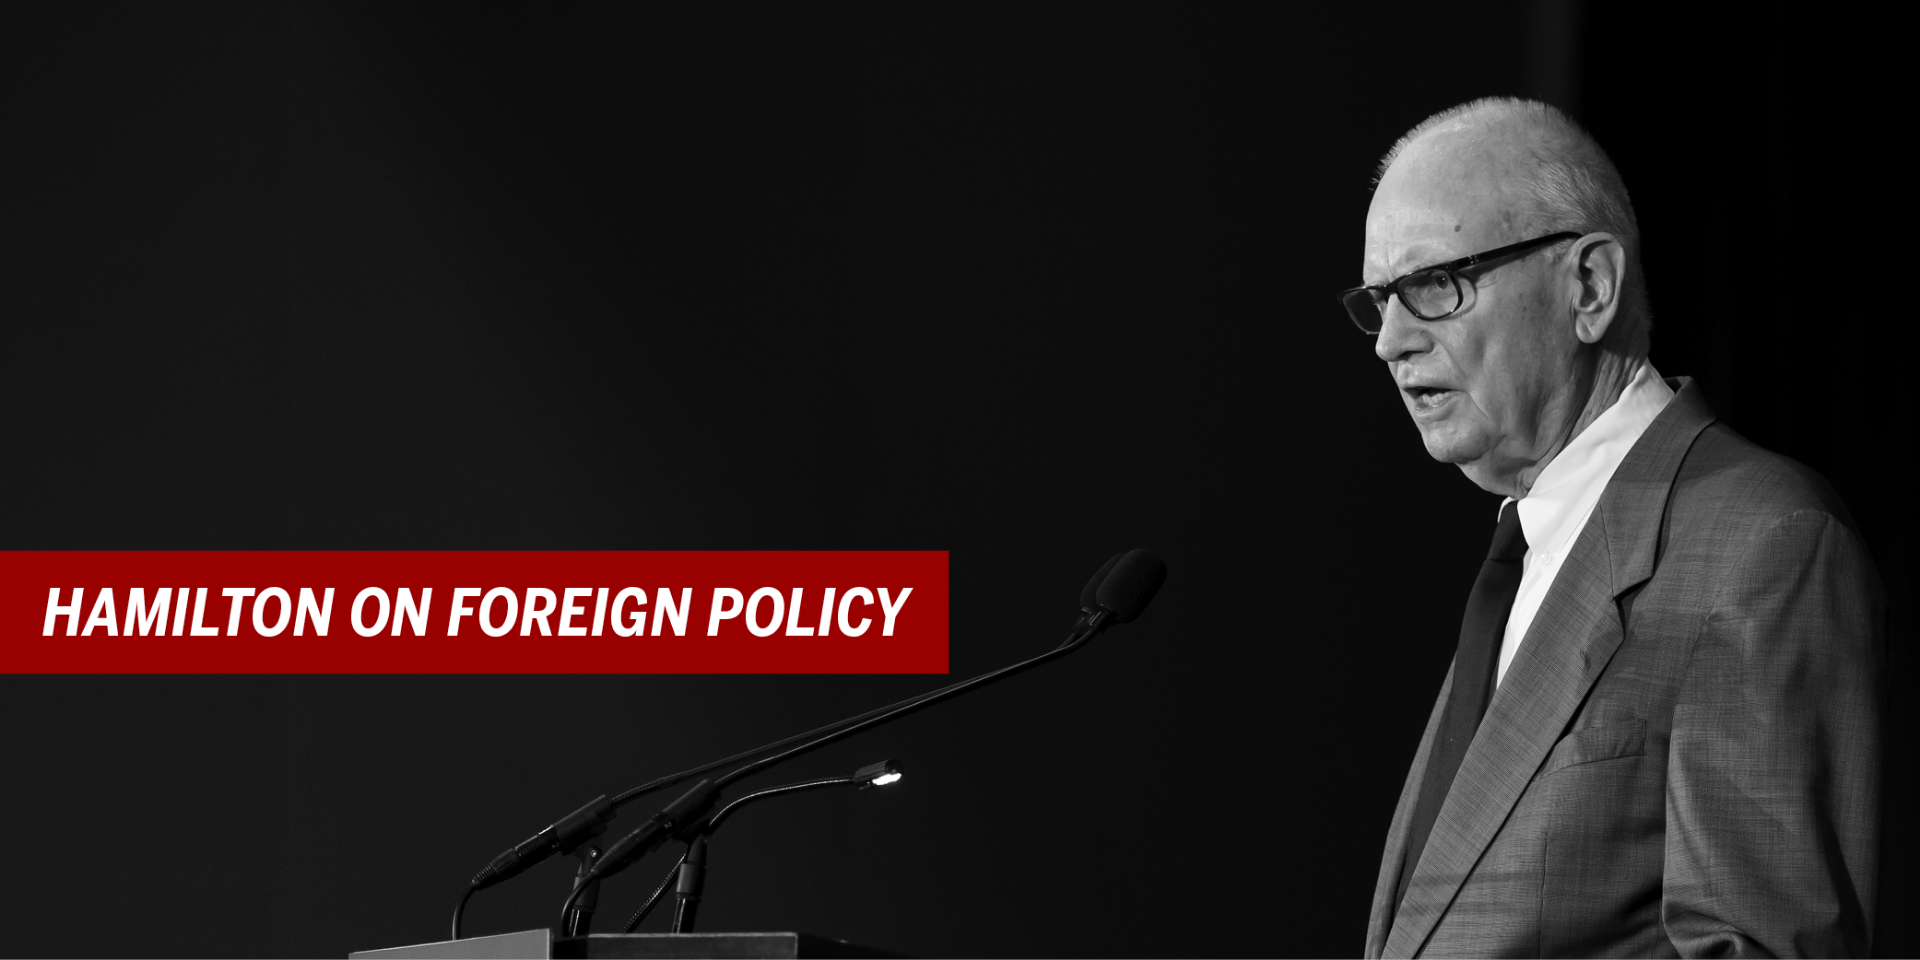 Lee Hamilton speaking on Foreign Policy